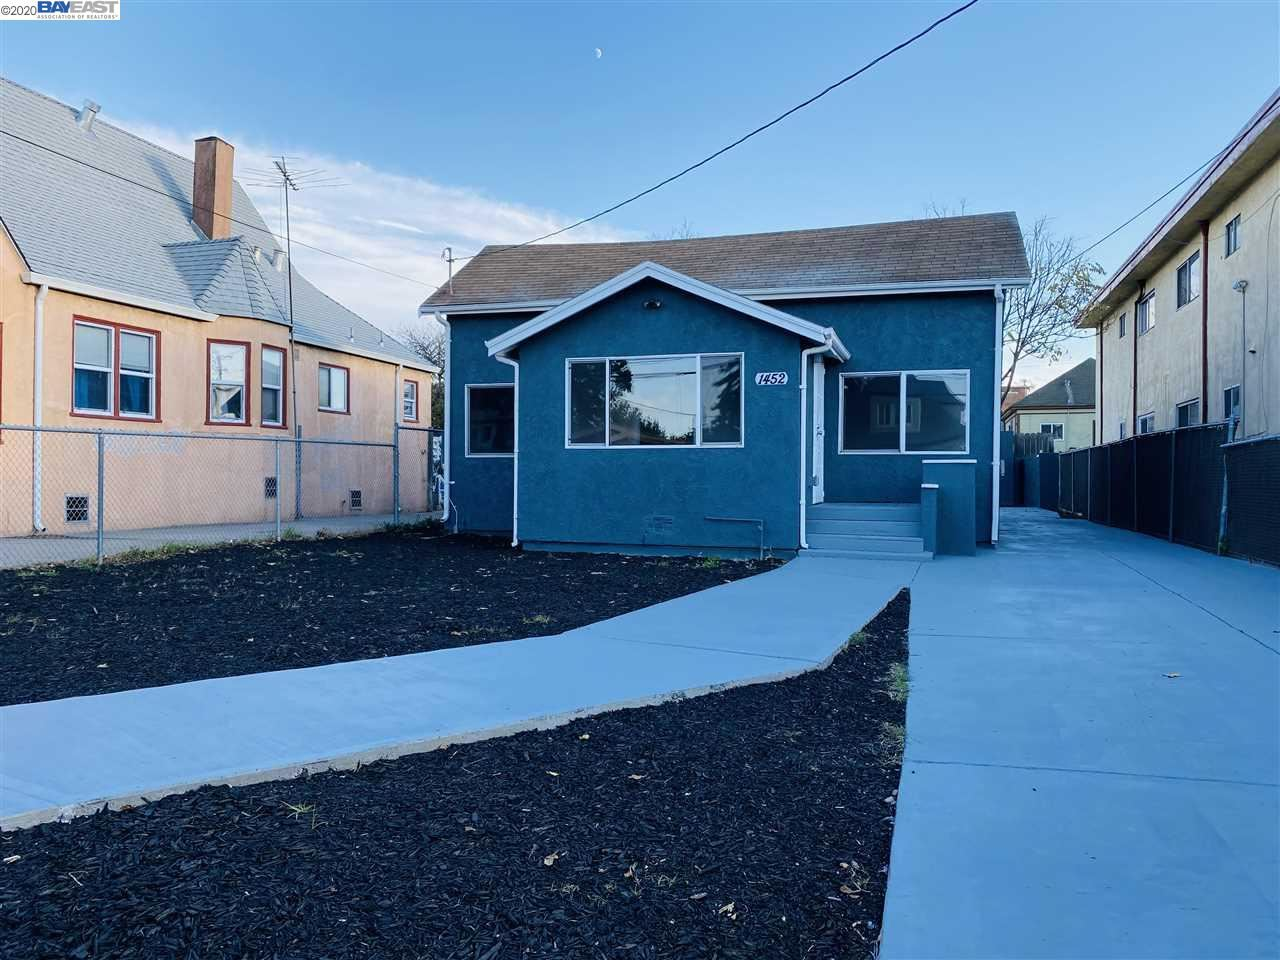 Photo for 1452 88TH AVE, OAKLAND, CA 94621 (MLS # 40930181)